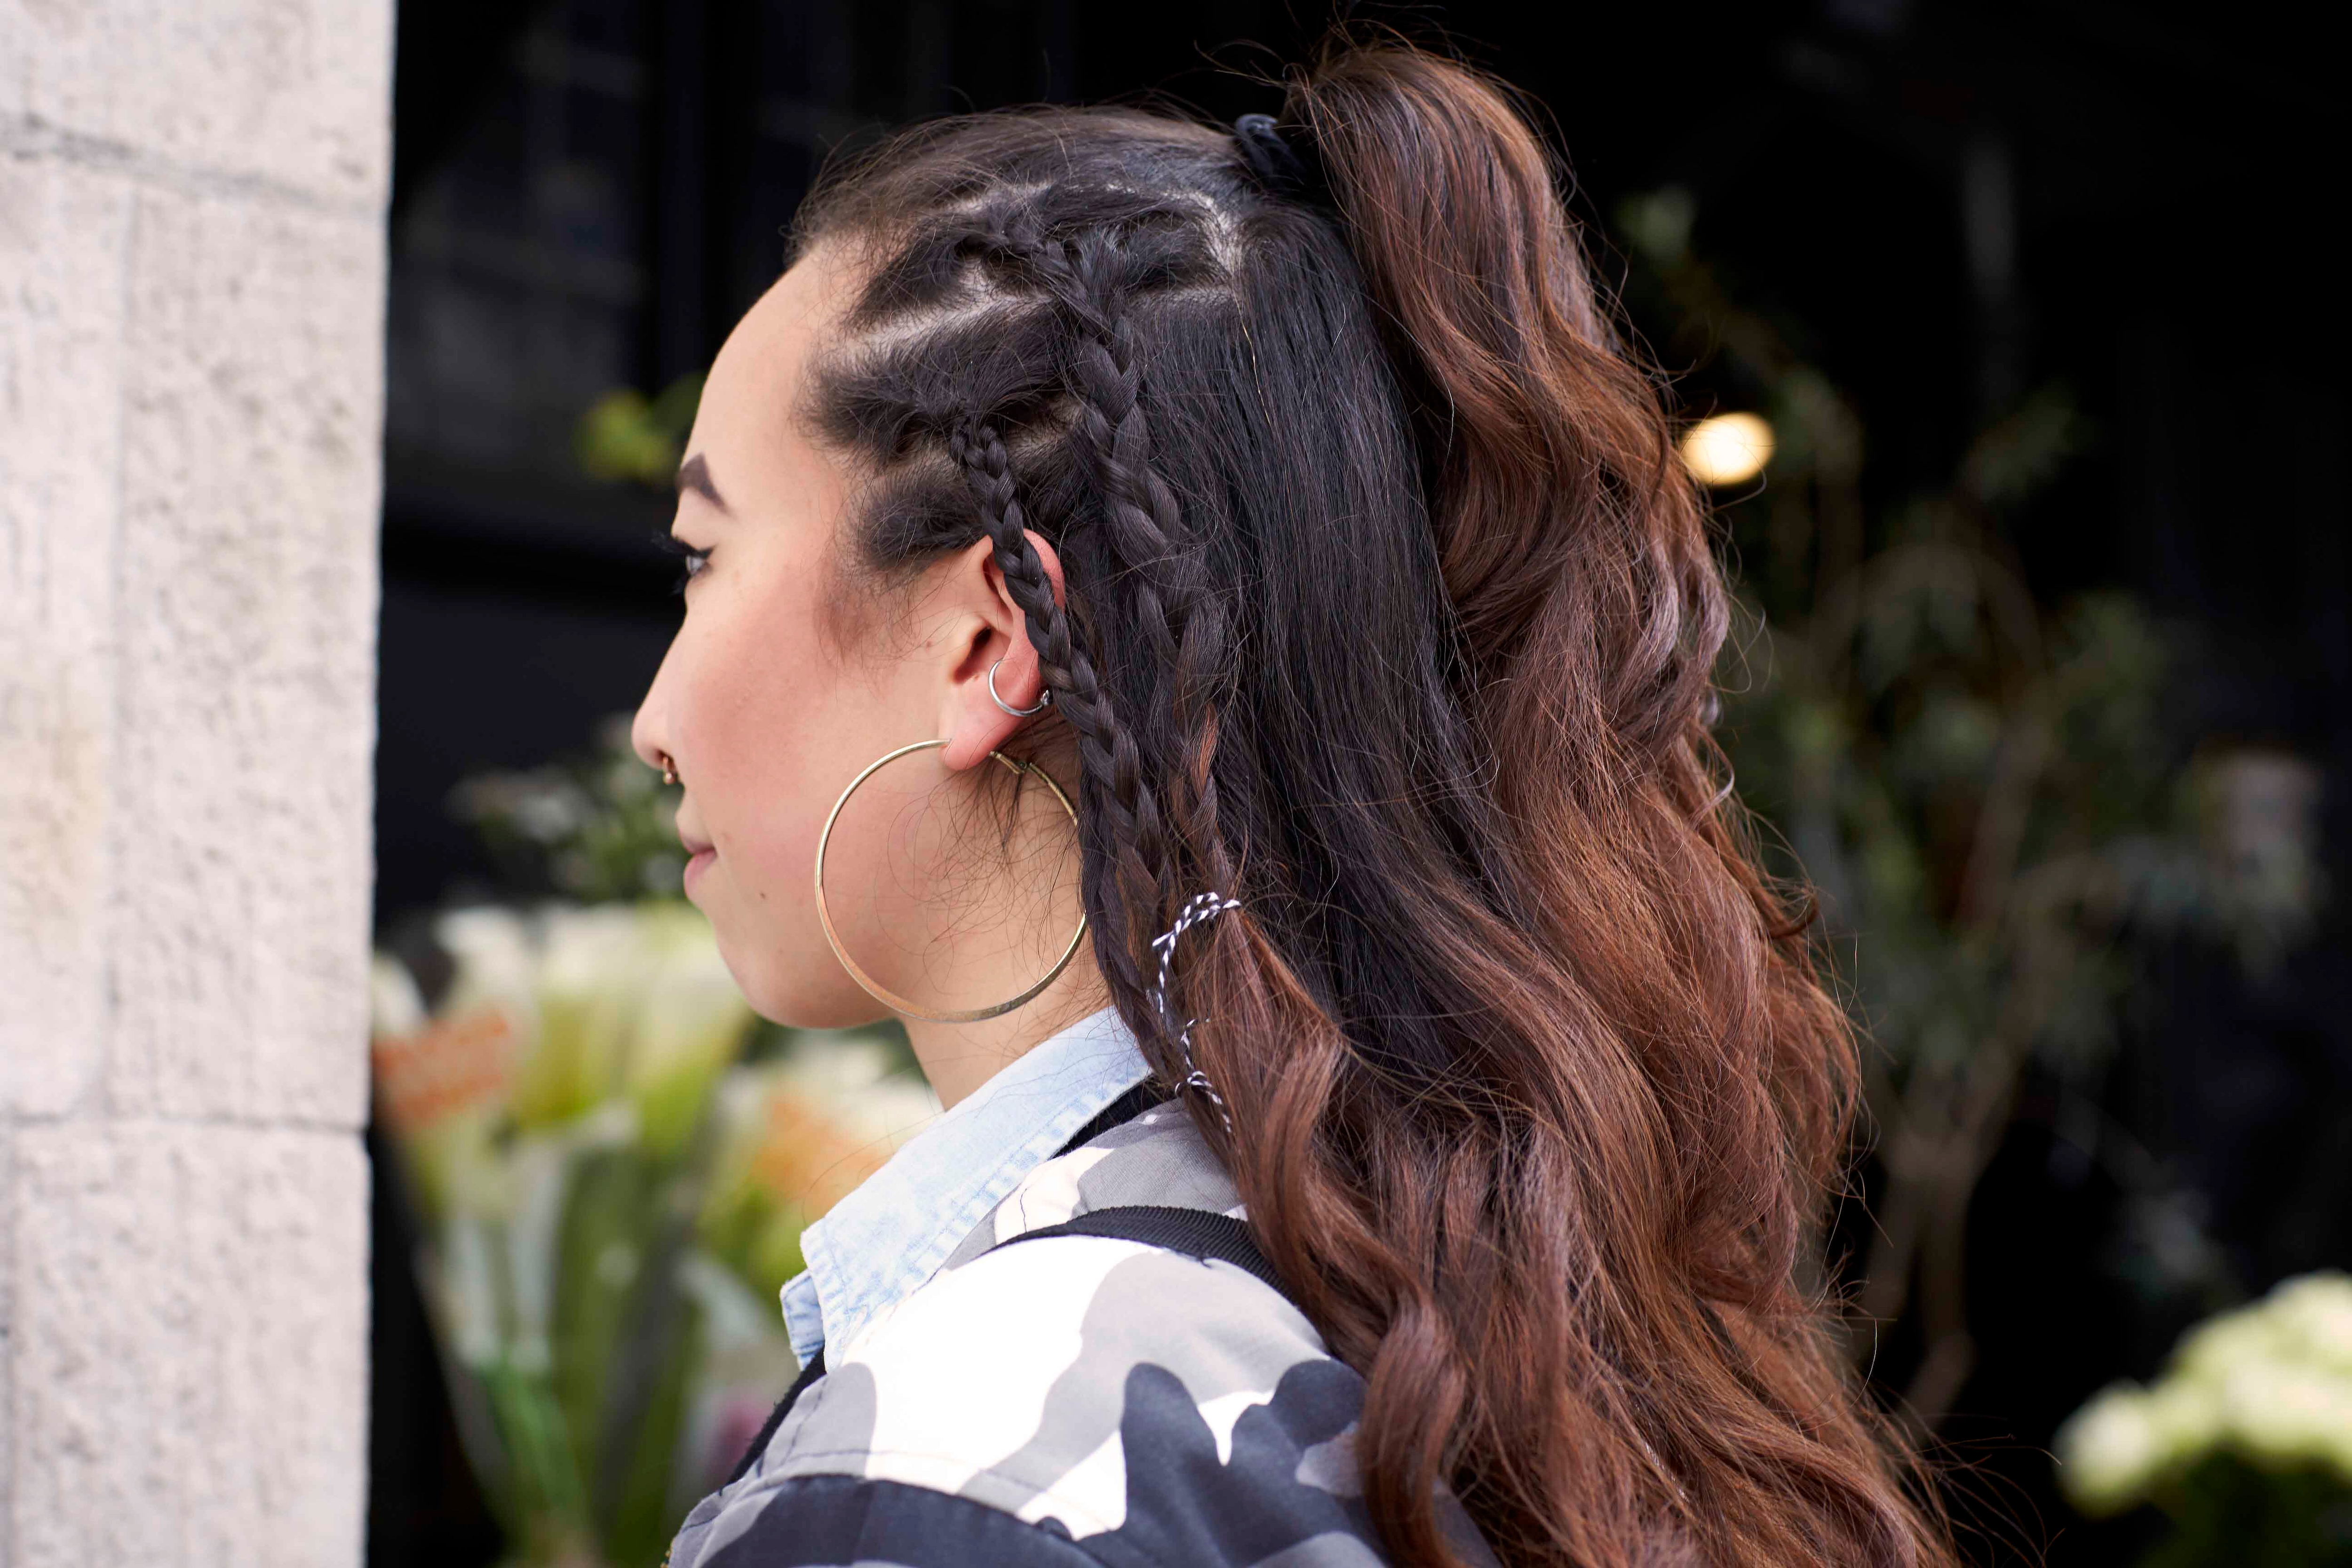 side view of woman with a half-up half-down plaited hairstyle